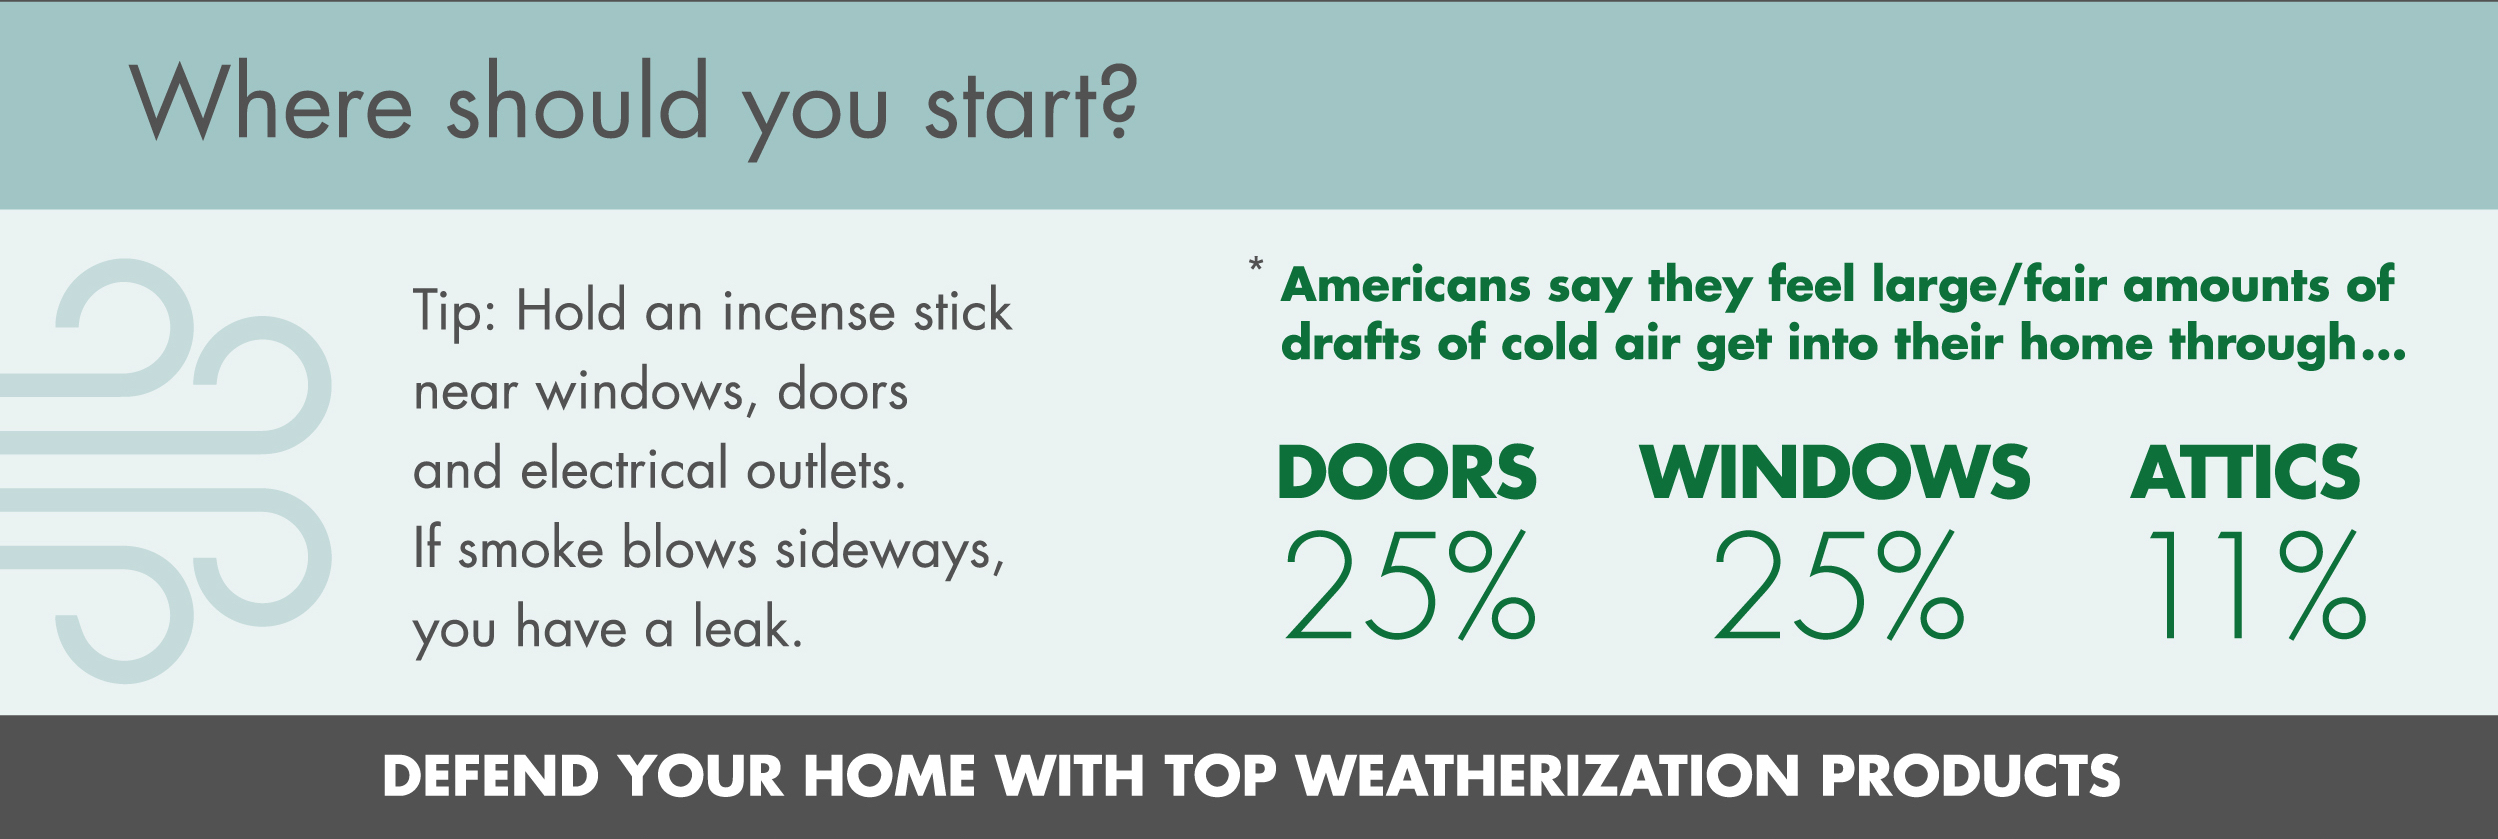 Duck Weatherization Infographic Final